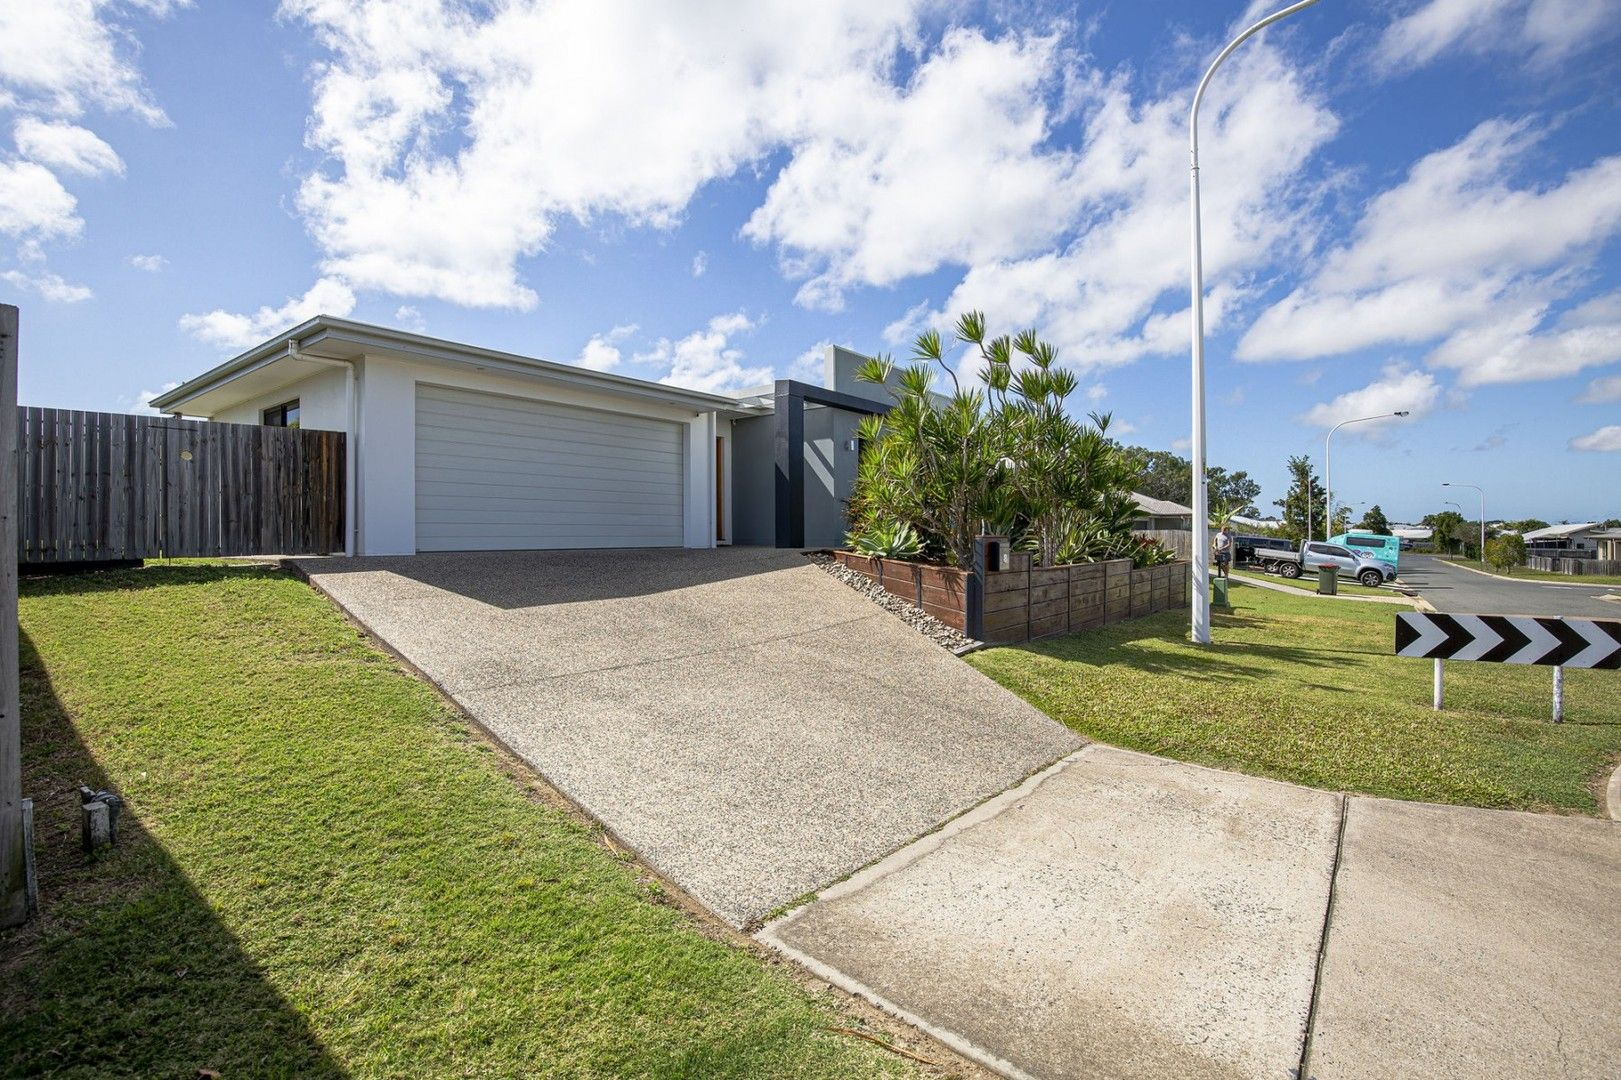 8 Jager Street, Rural View QLD 4740, Image 0